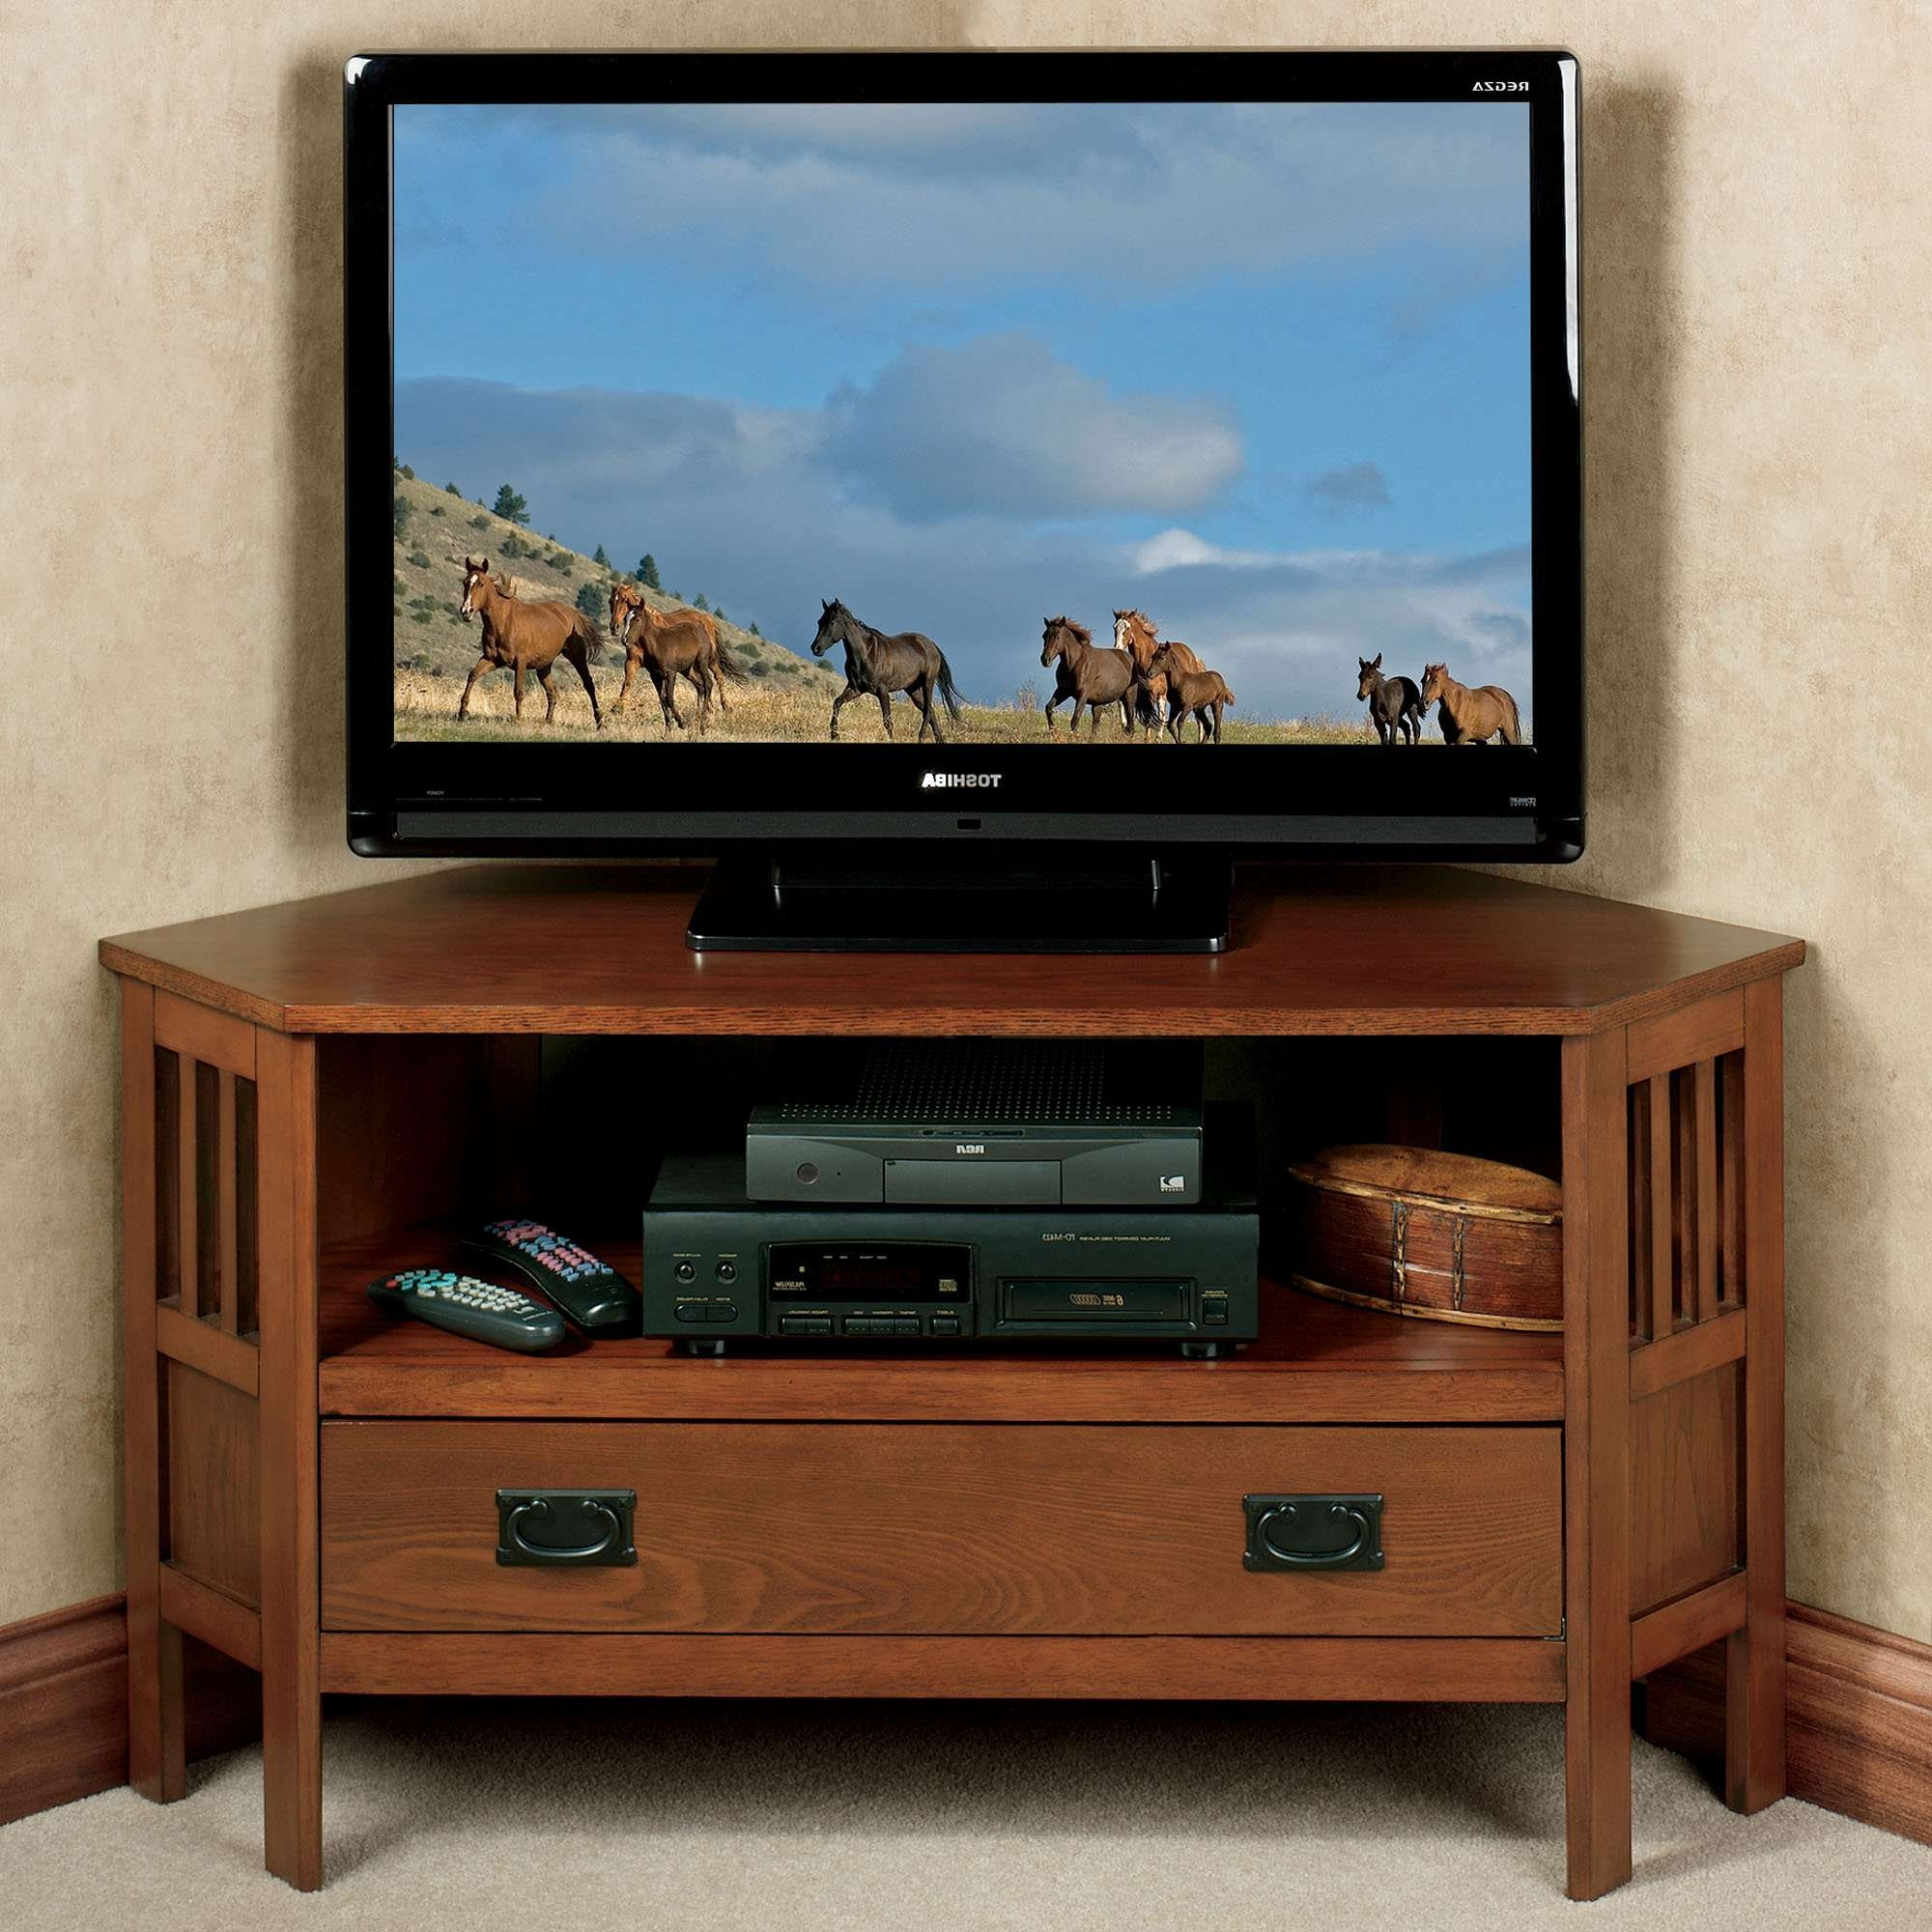 Home Decor: Alluring Wood Tv Stands For Flat Screens With Corner With Regard To Corner Wooden Tv Stands (View 3 of 15)